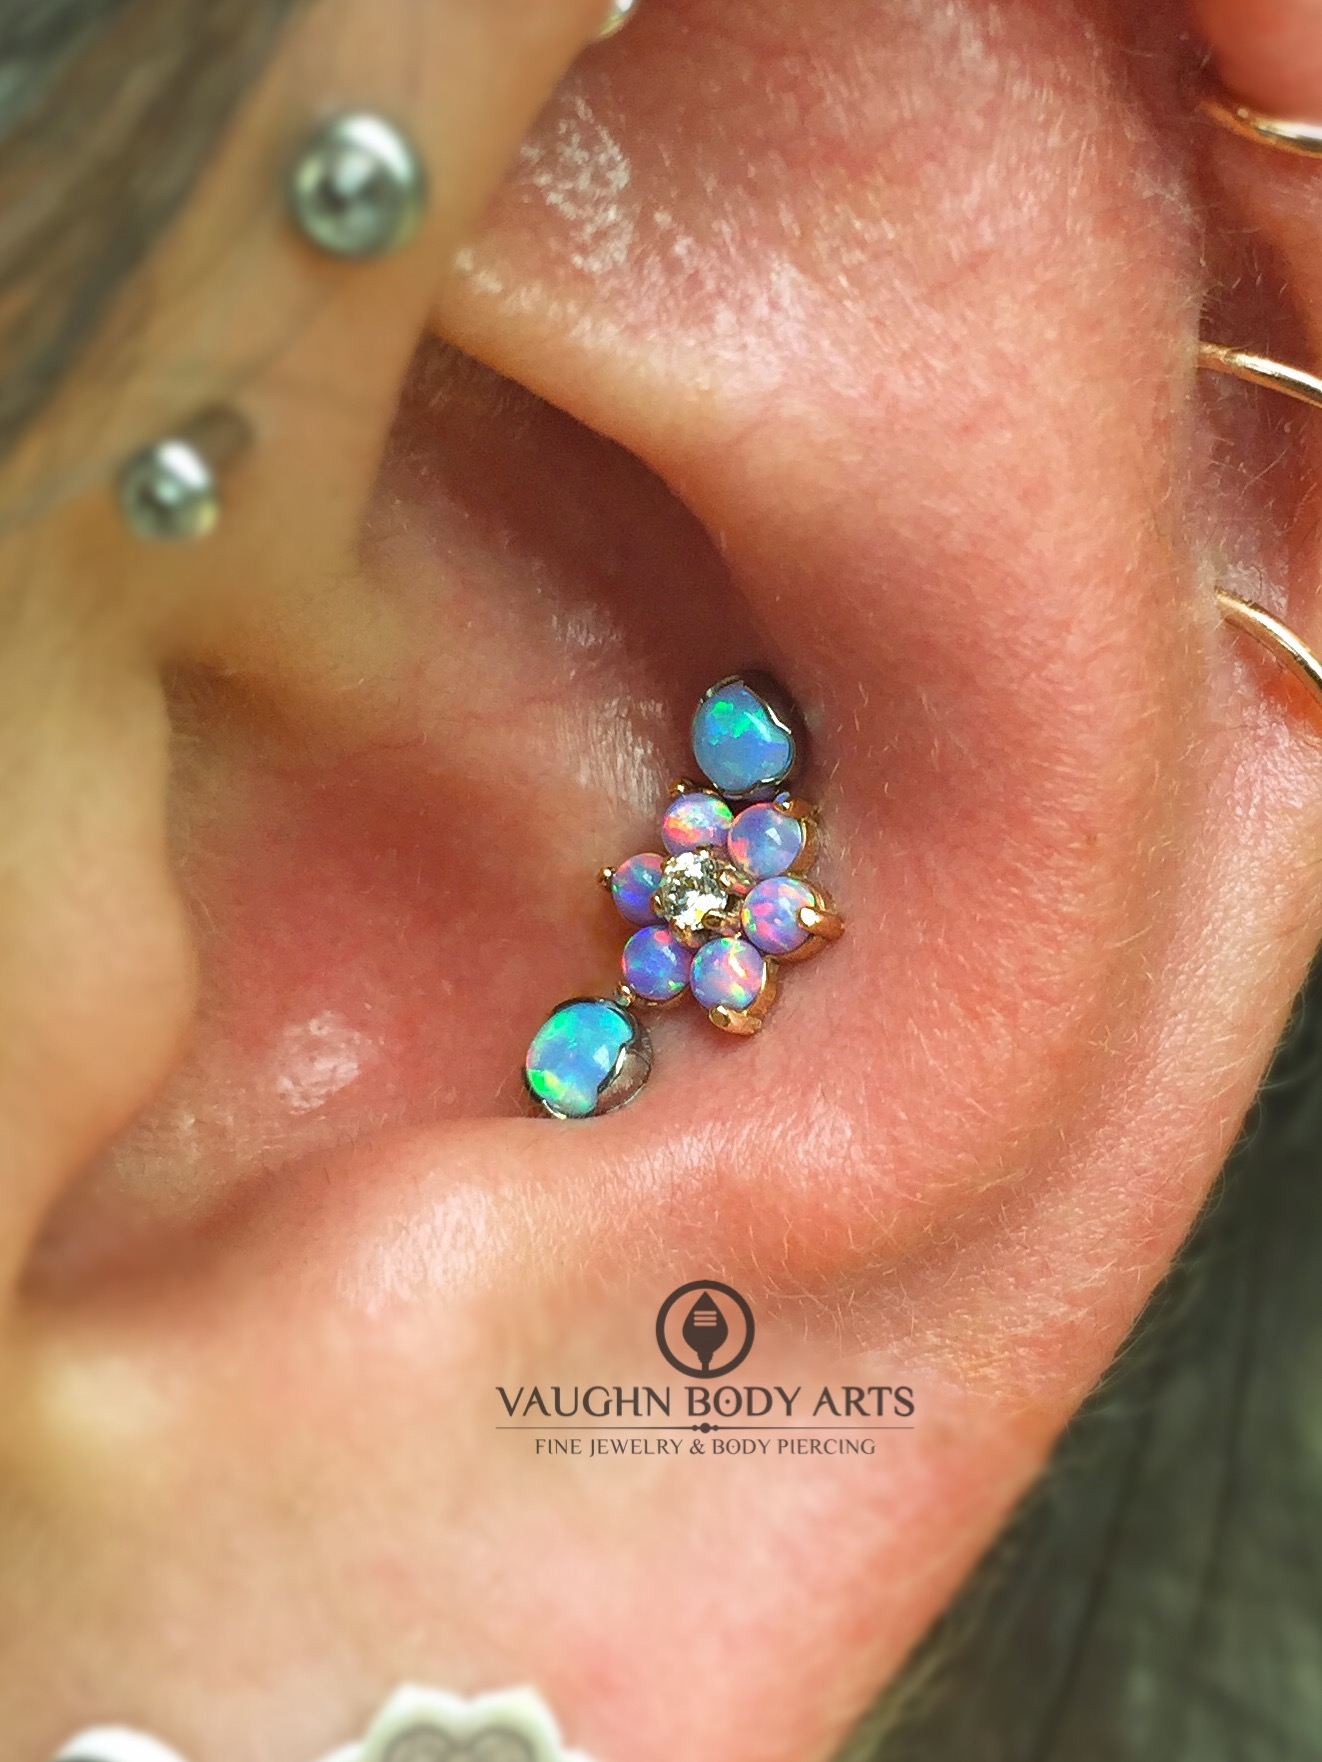 Triple conch piercing featuring jewelry from Anatometal. In the center is an 18k rose gold flower with light purple opals, and two 3mm light blue opals set in implant grade titanium.